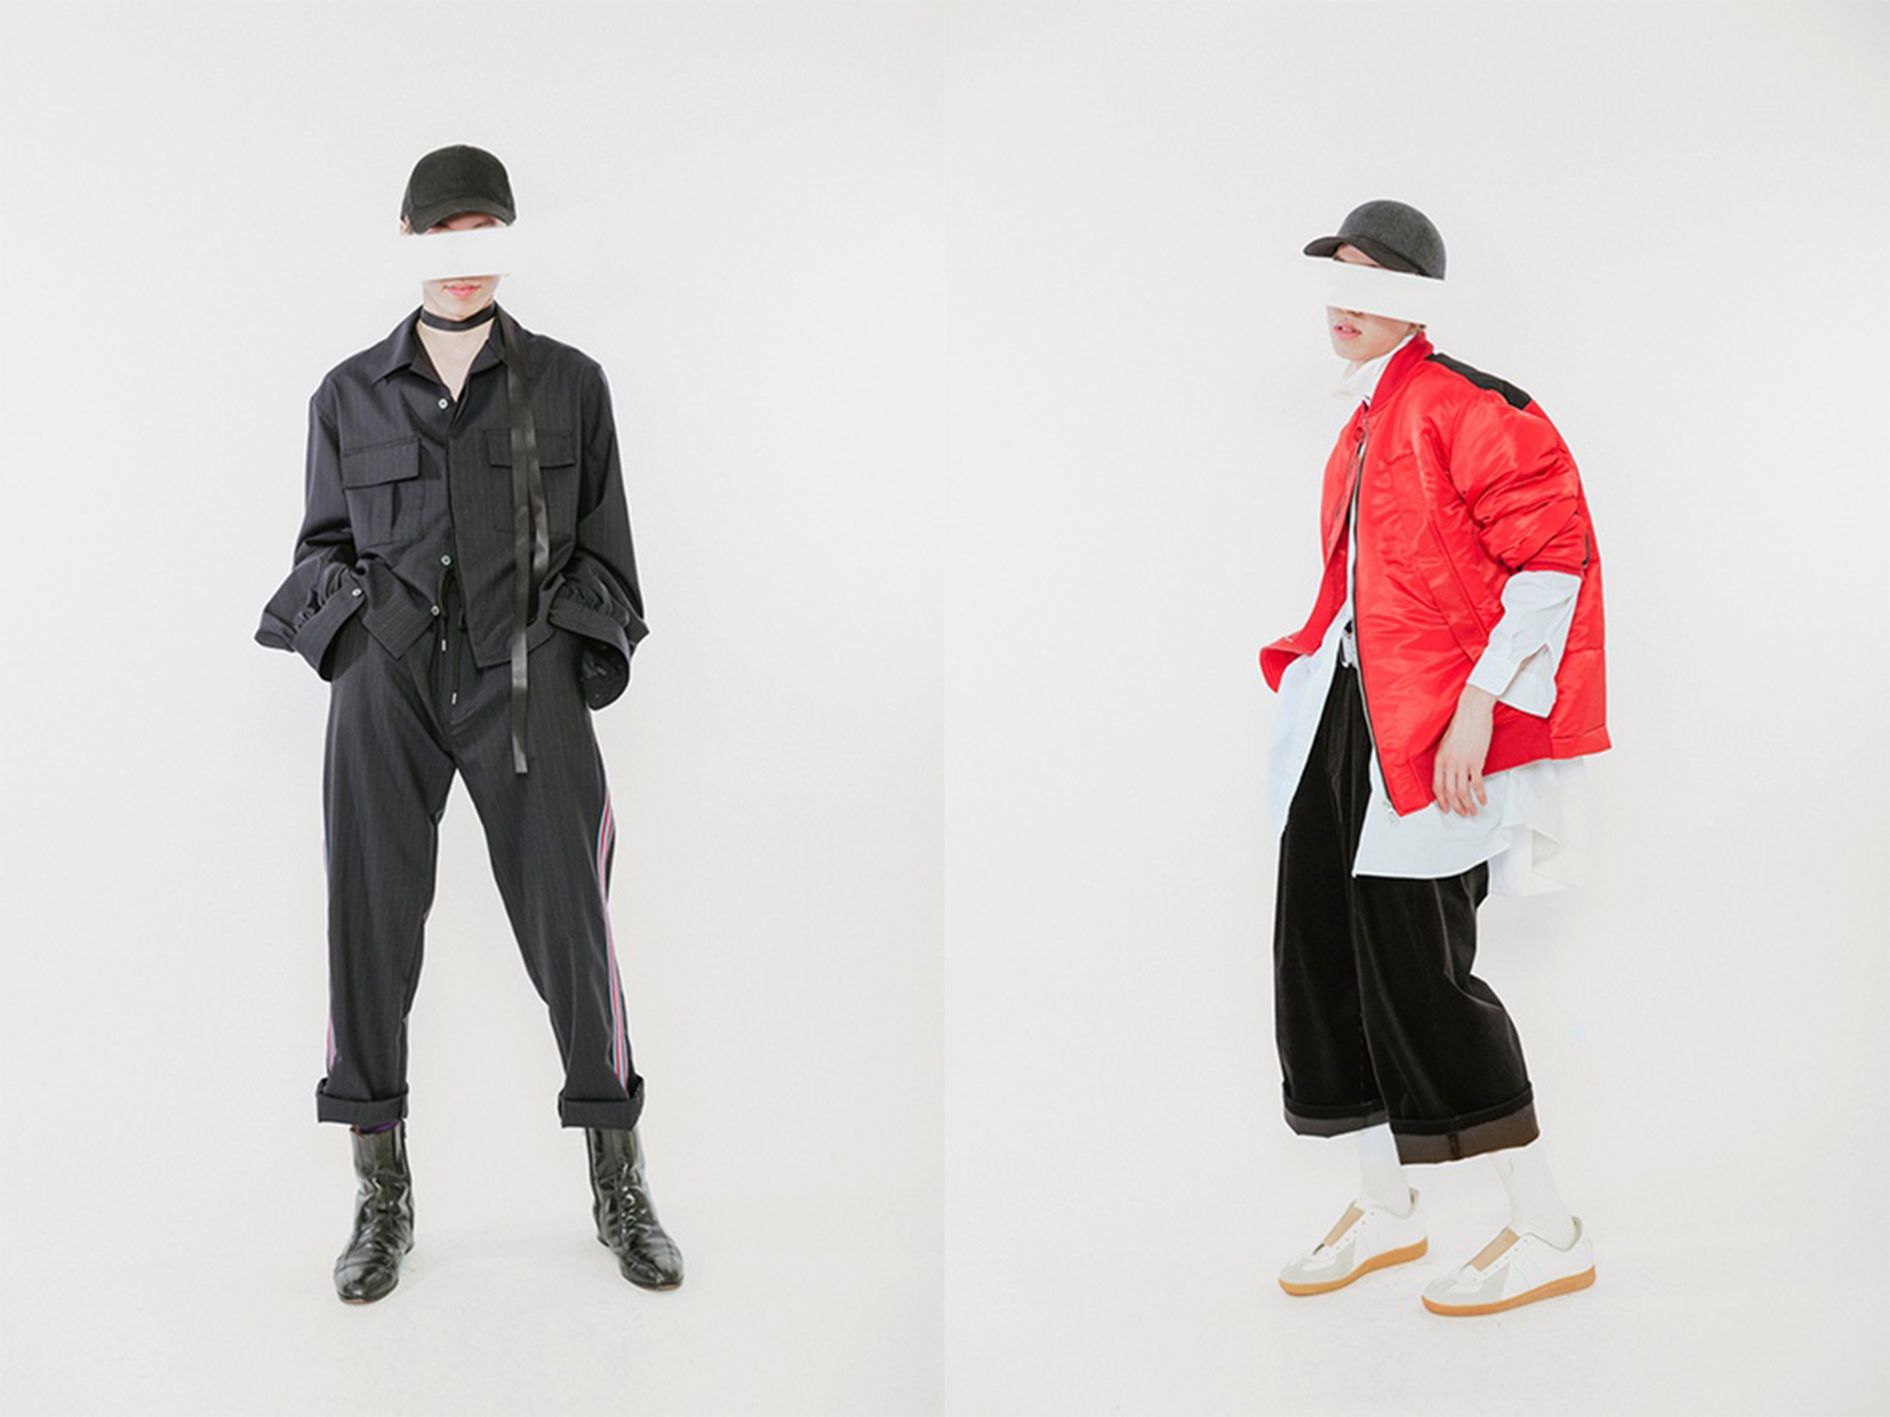 NuGgETS Unveils Fall/Winter 2017 Collection